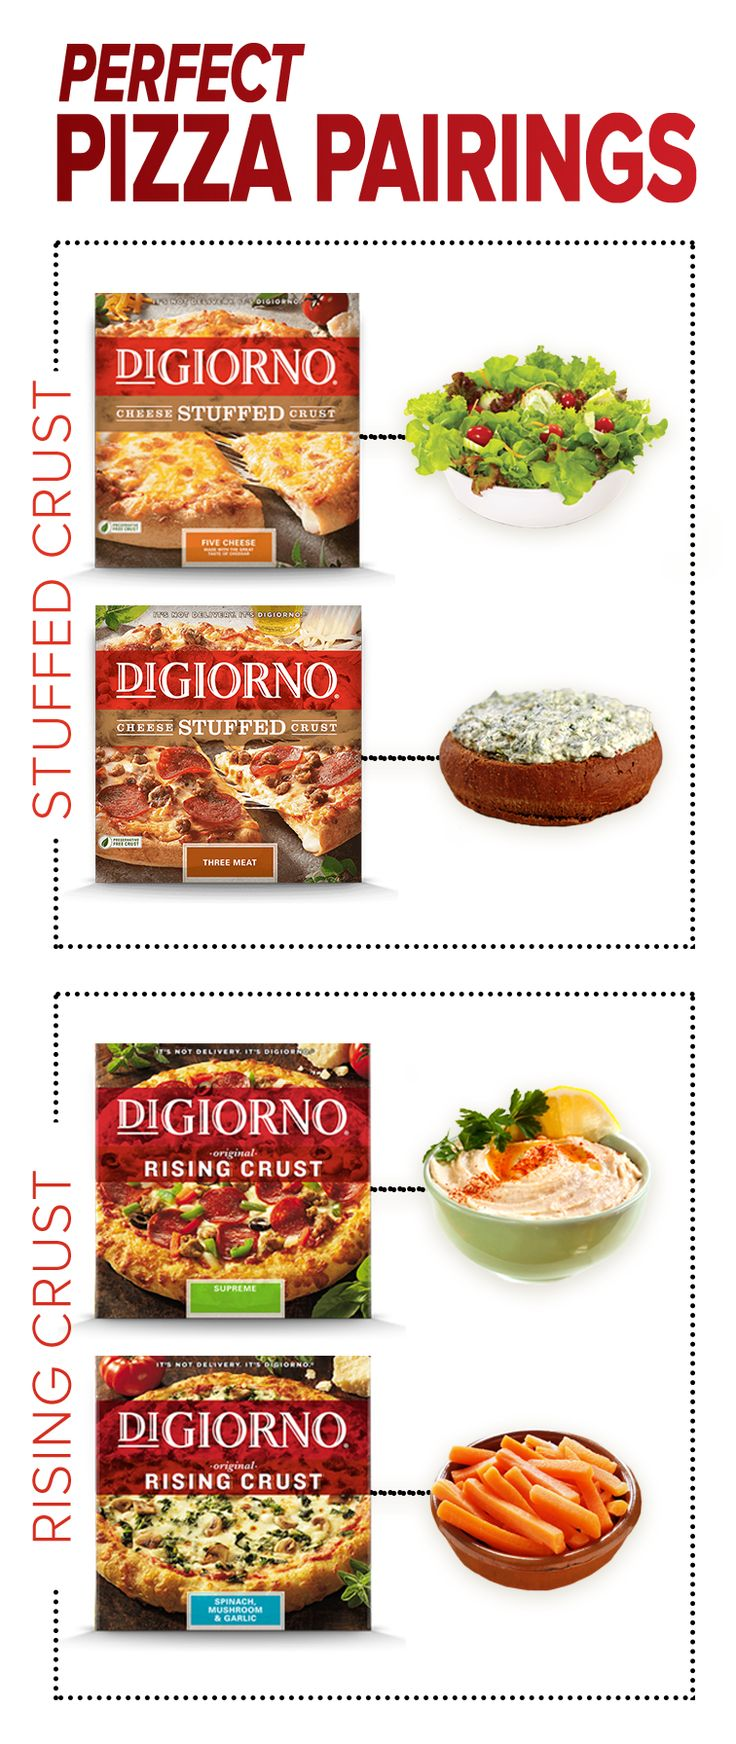 12 best Make the Right Call images on Pinterest | Pizza dip recipes ...